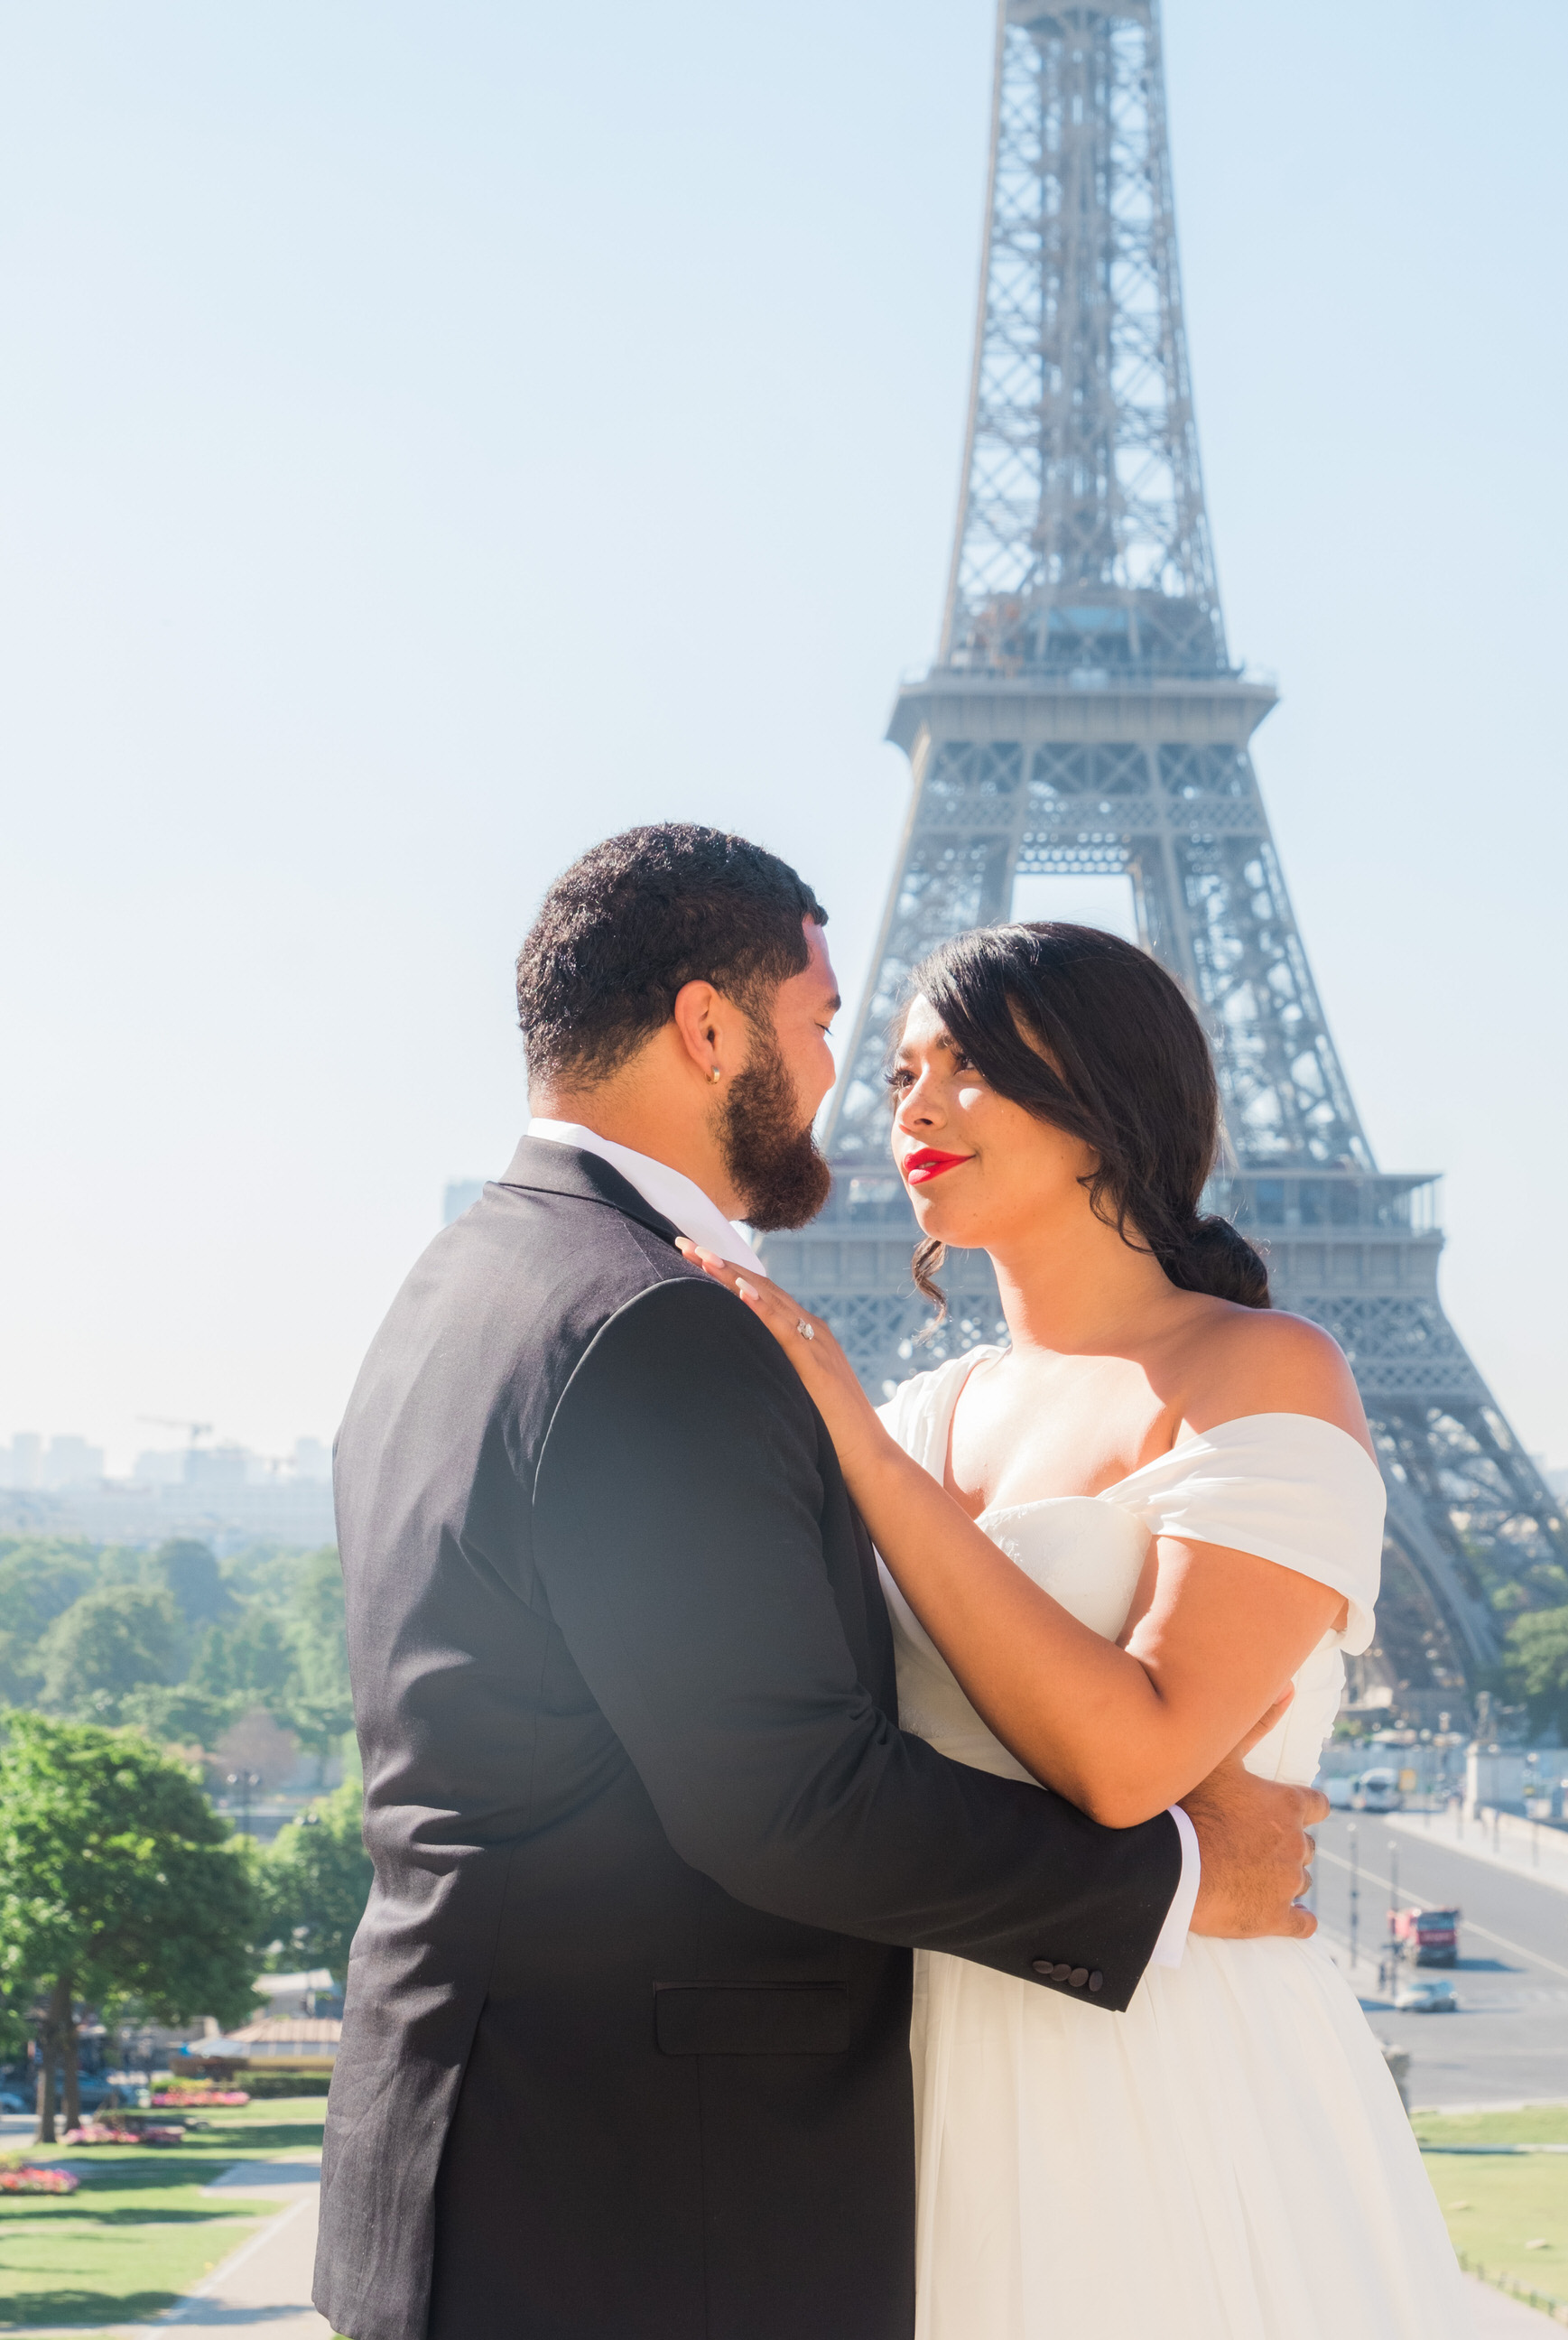 Elegant, romantic newlywed photo session at the Eiffel Tower in Paris, France